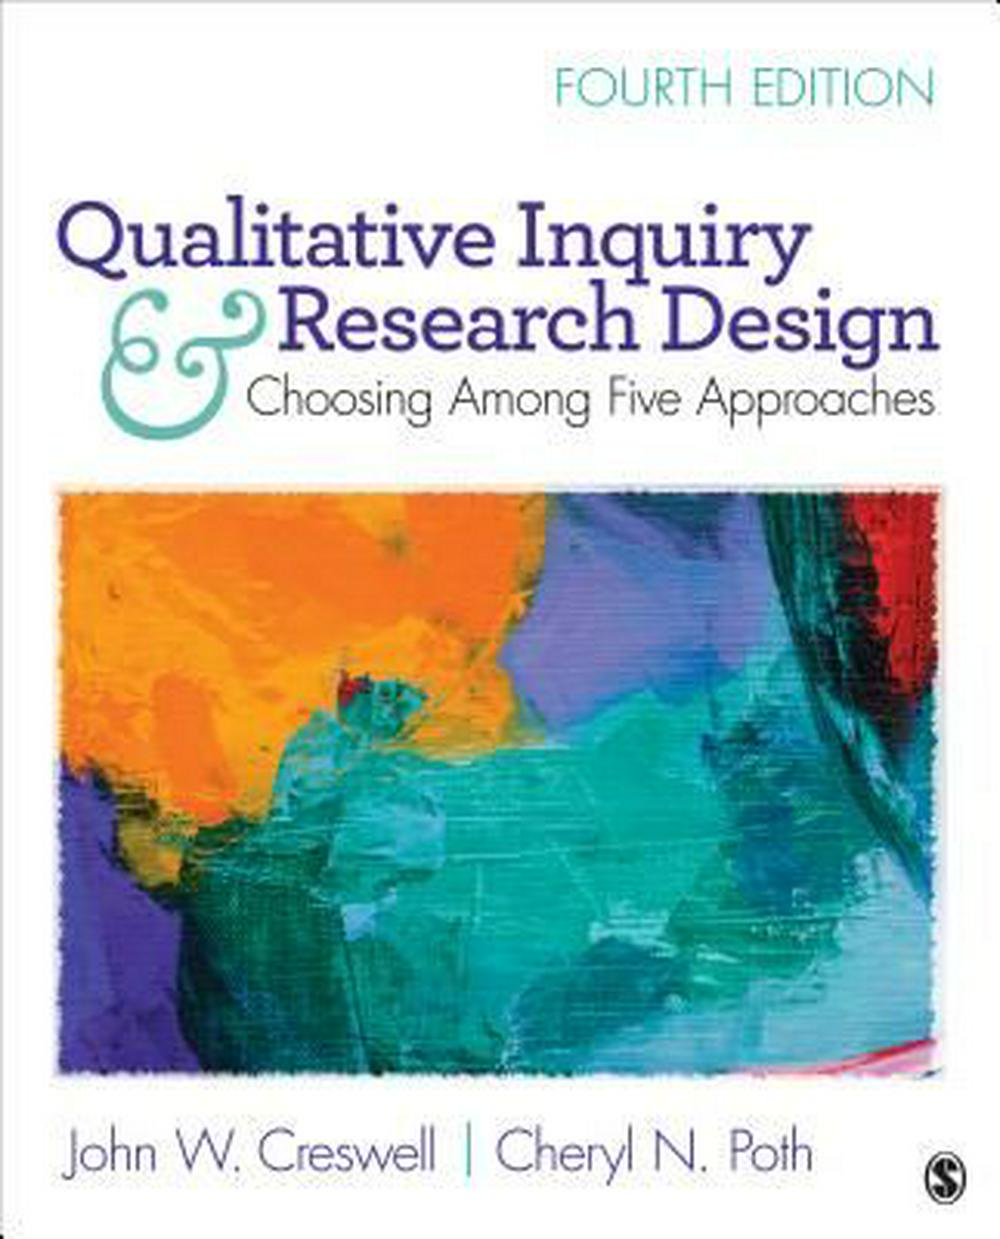 Qualitative Inquiry and Research DesignChoosing Among Five Approaches